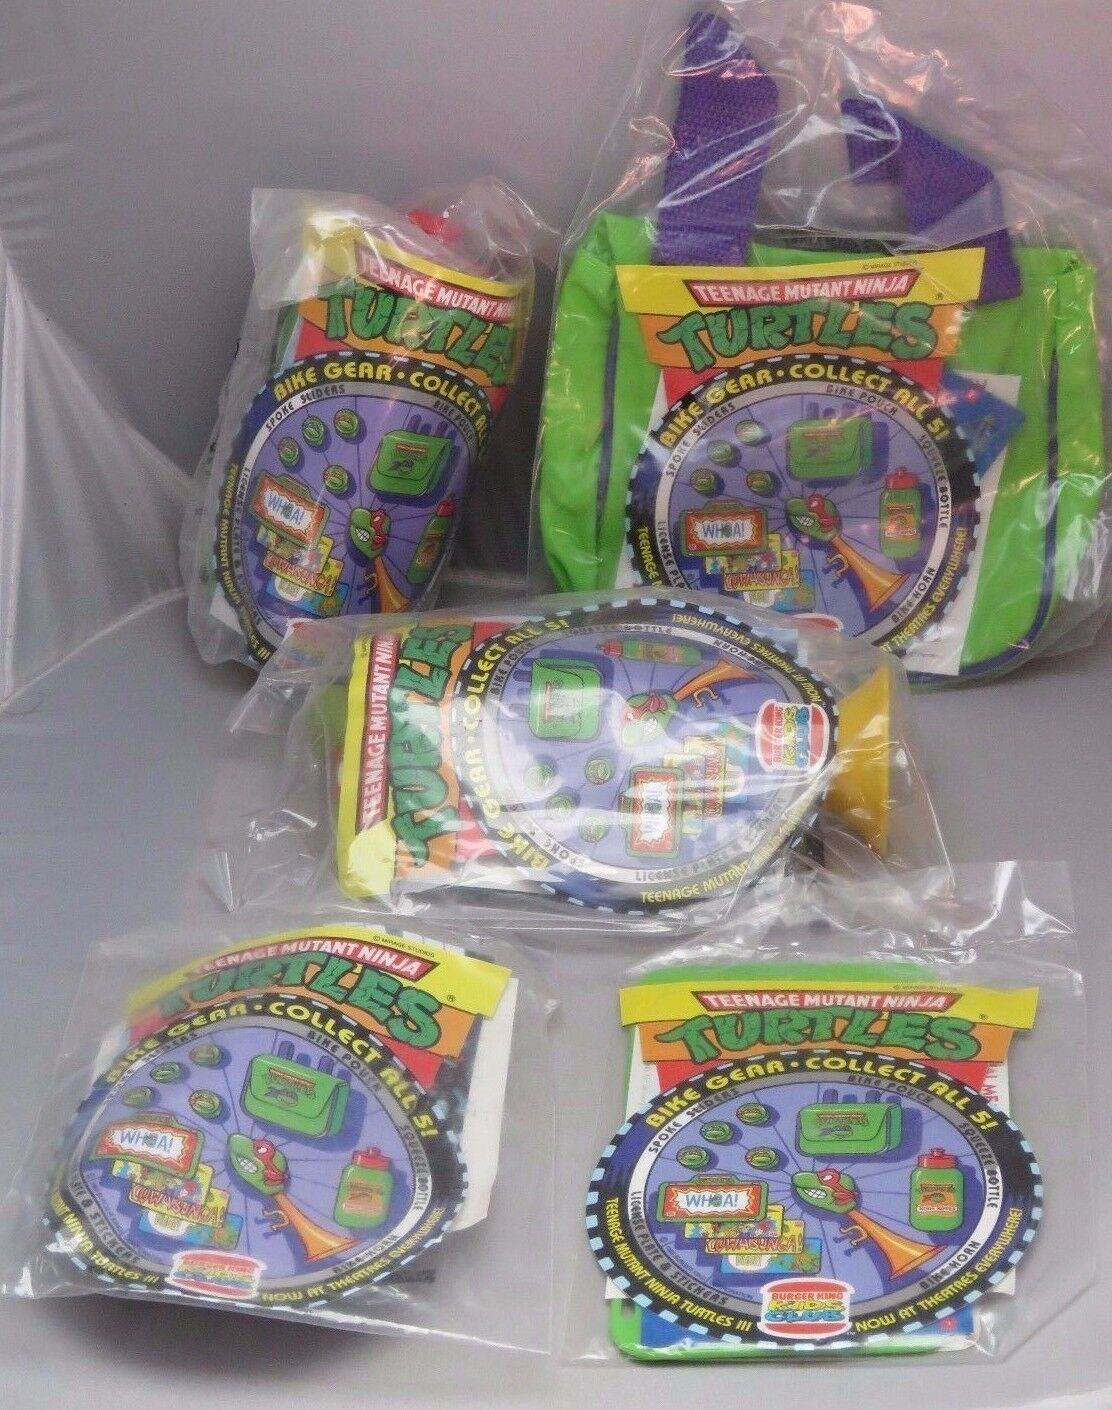 Vintage TMNT Teenage Mutant Ninja Turtle 1993 Burger King Kids 5 piece bike set